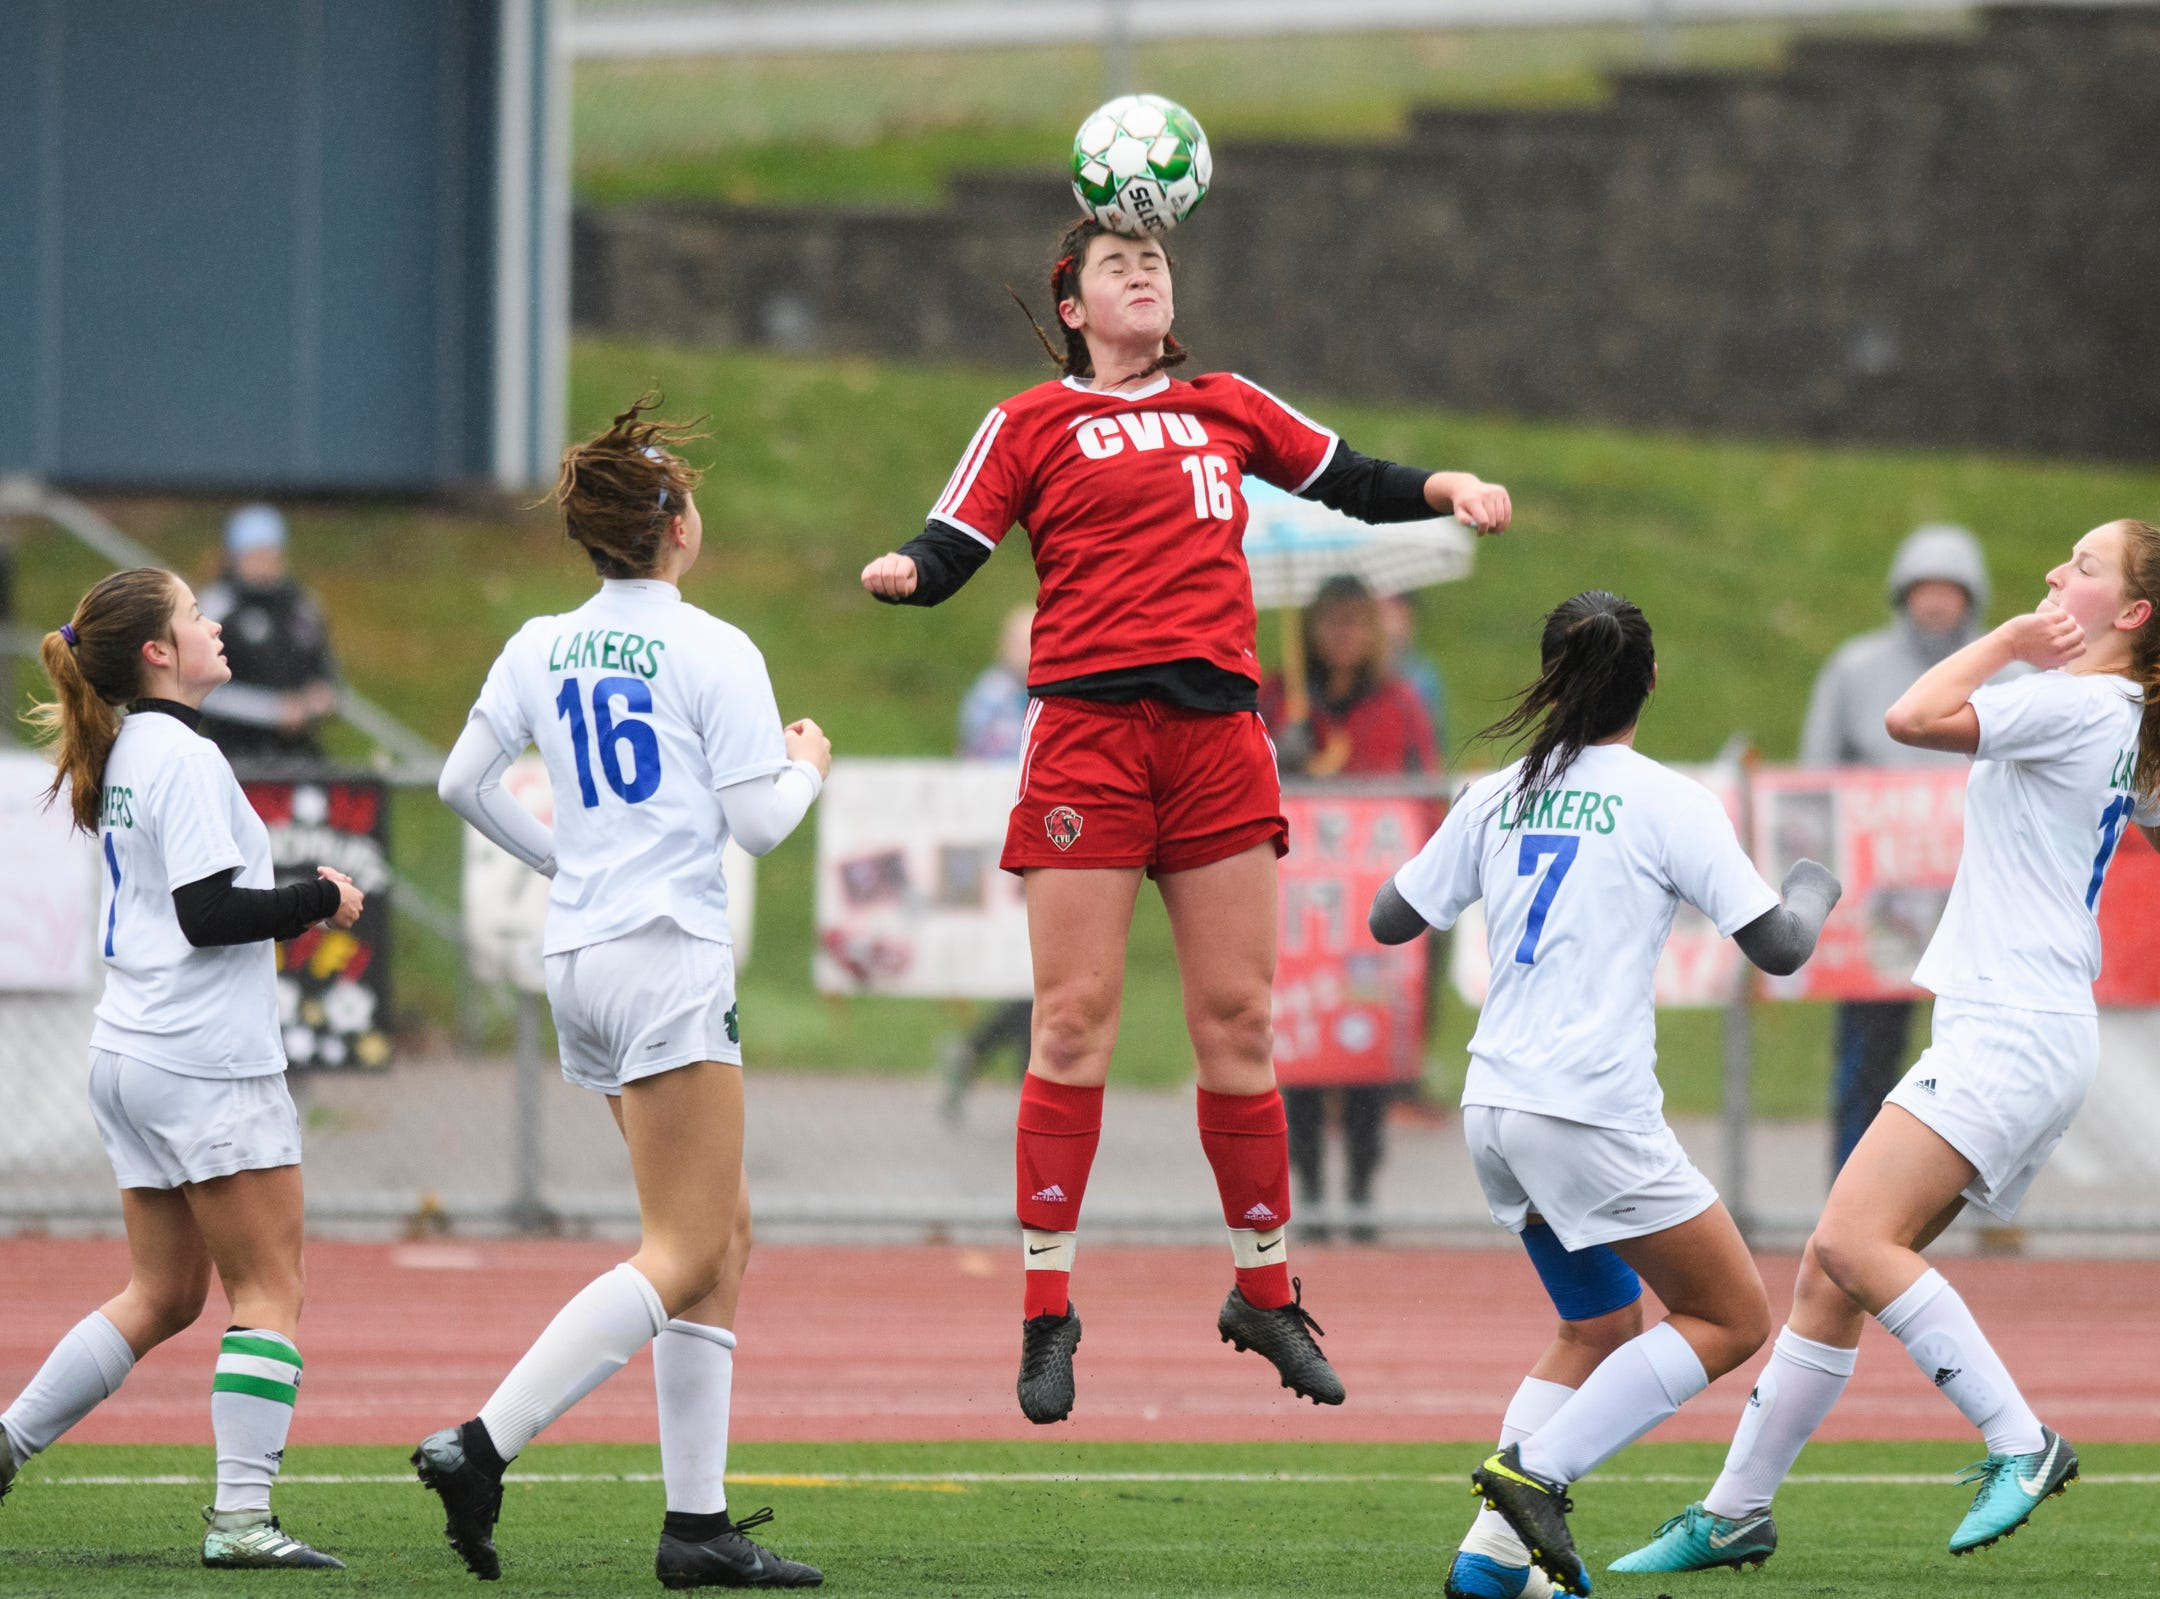 CVU's Ella Woodruff (16) leaps to head the ball during the division I girls soccer championship game between the Colchester Lakers and the Champlain Valley Union Redhawks at Buck Hard Field on Saturday morning November 3, 2018 in Burlington.